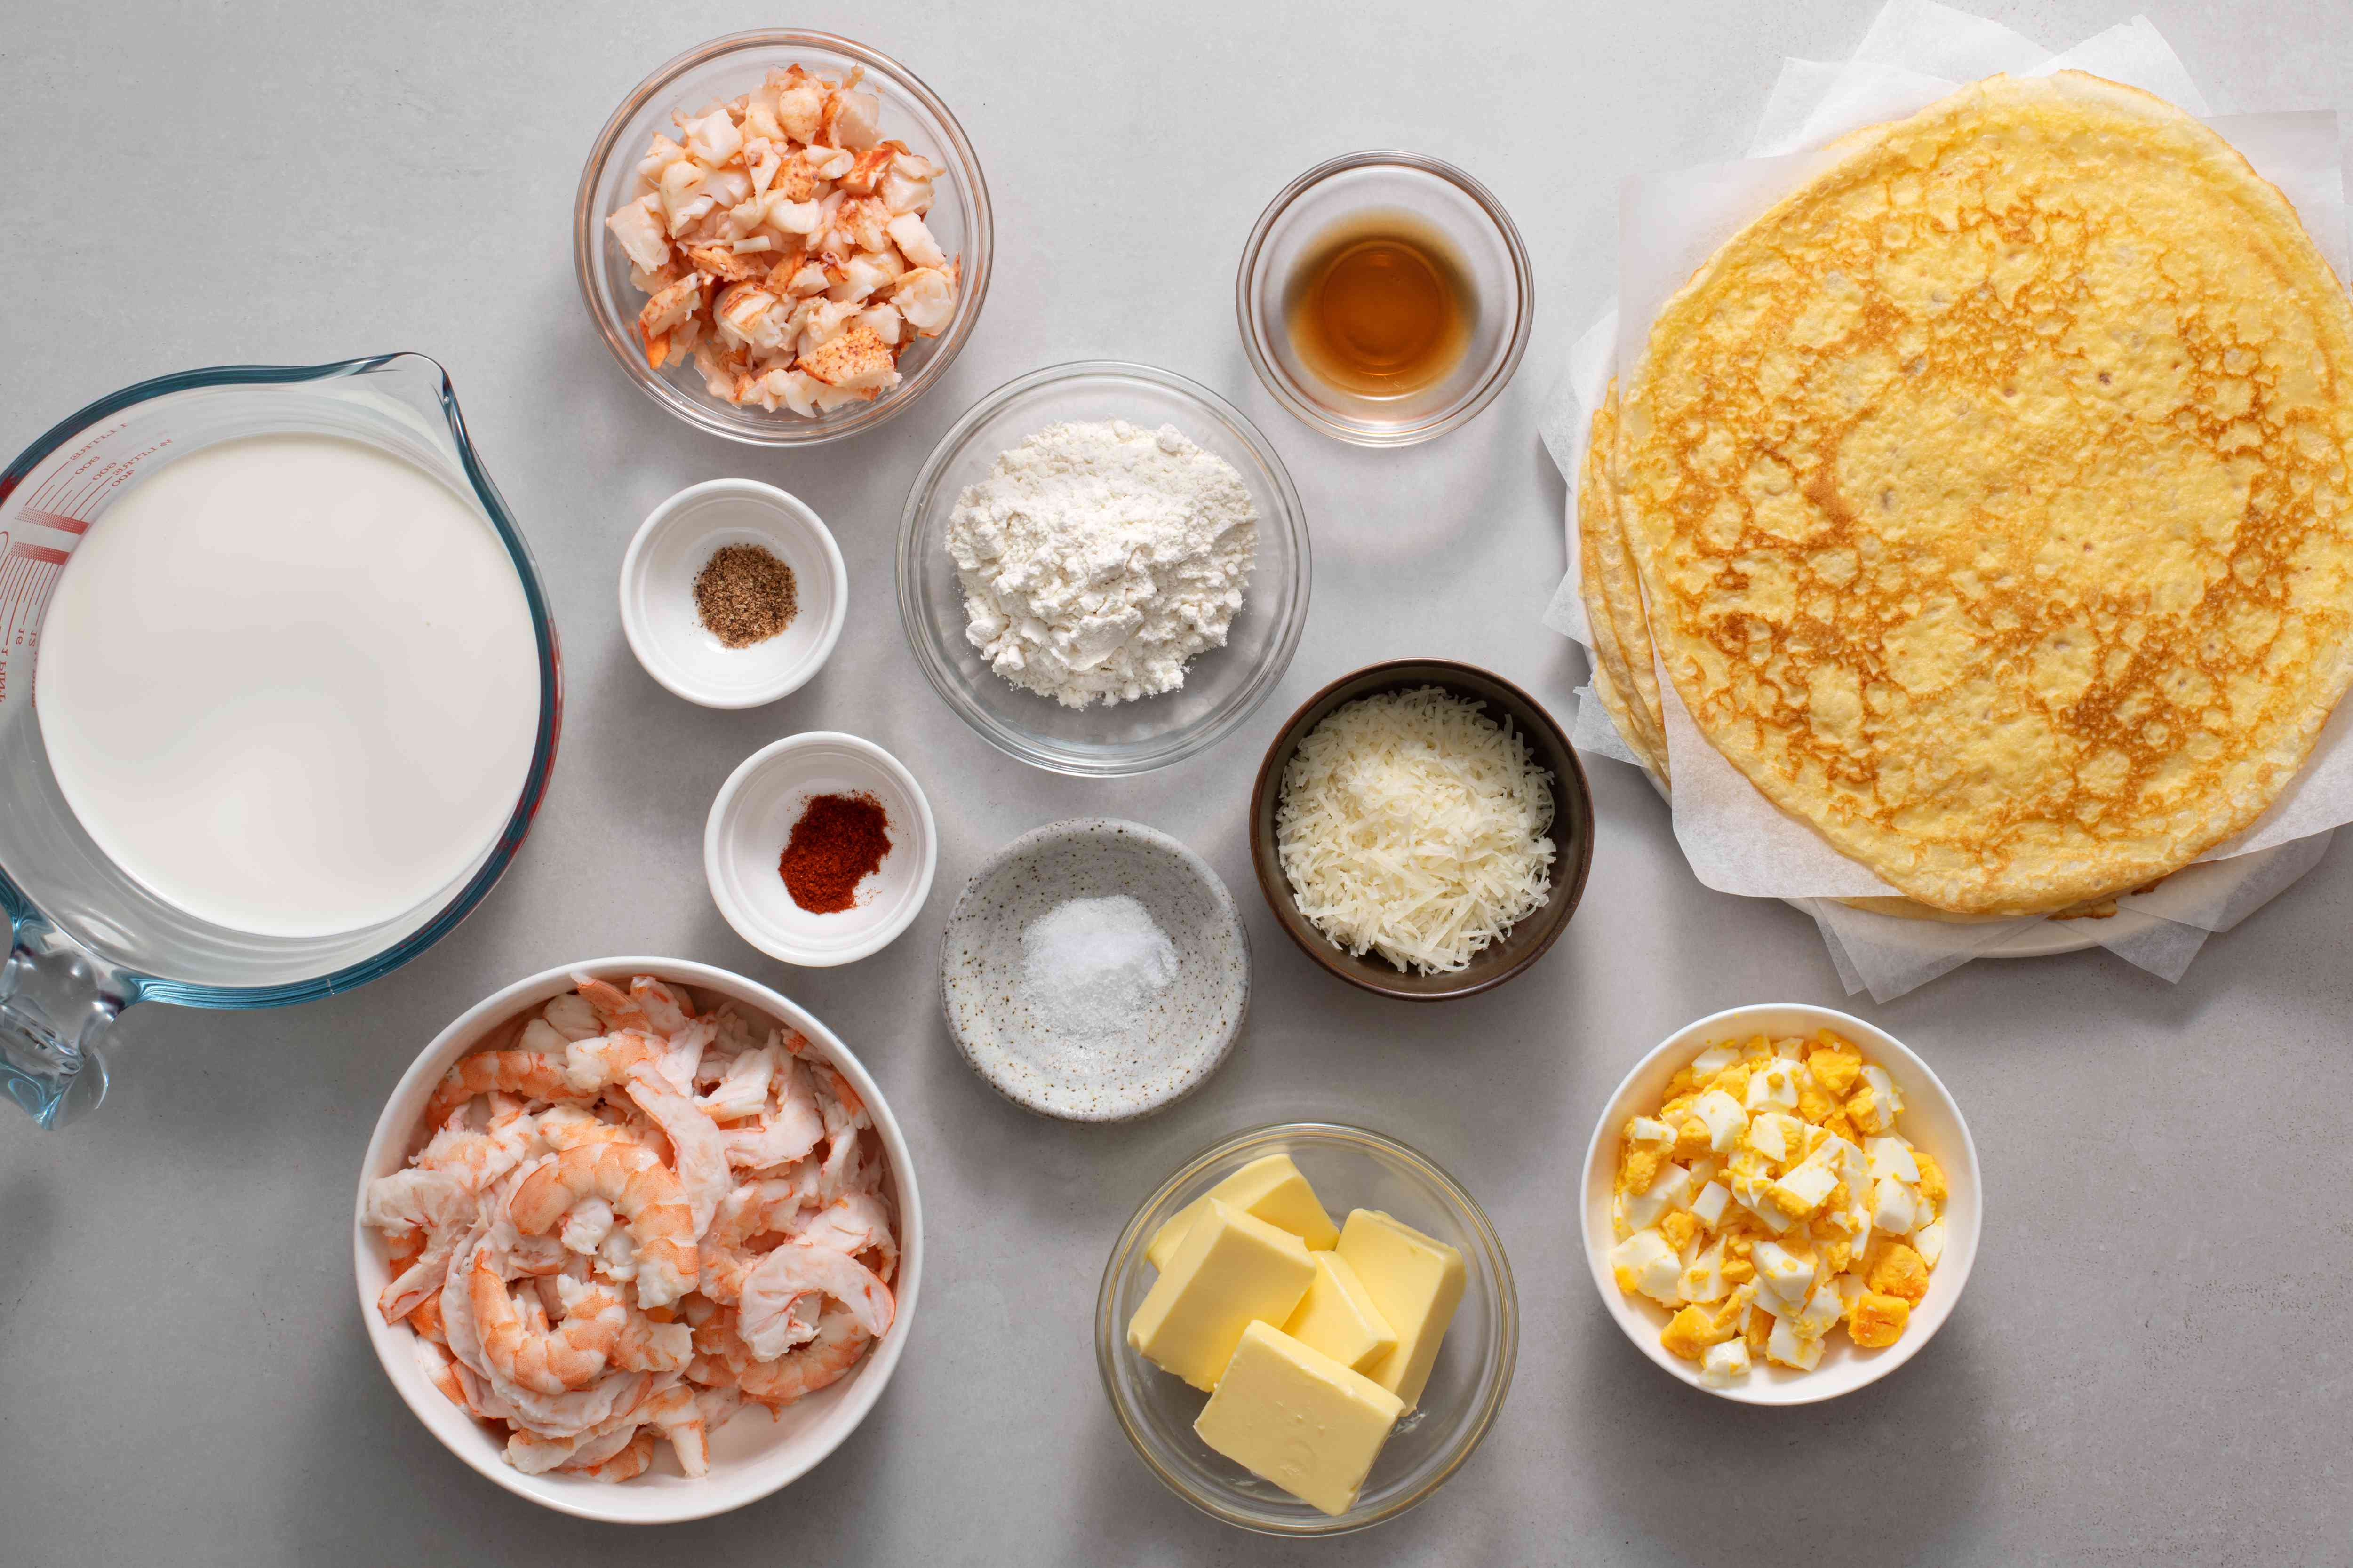 Seafood Crepes With Shrimp & Lobster ingredients